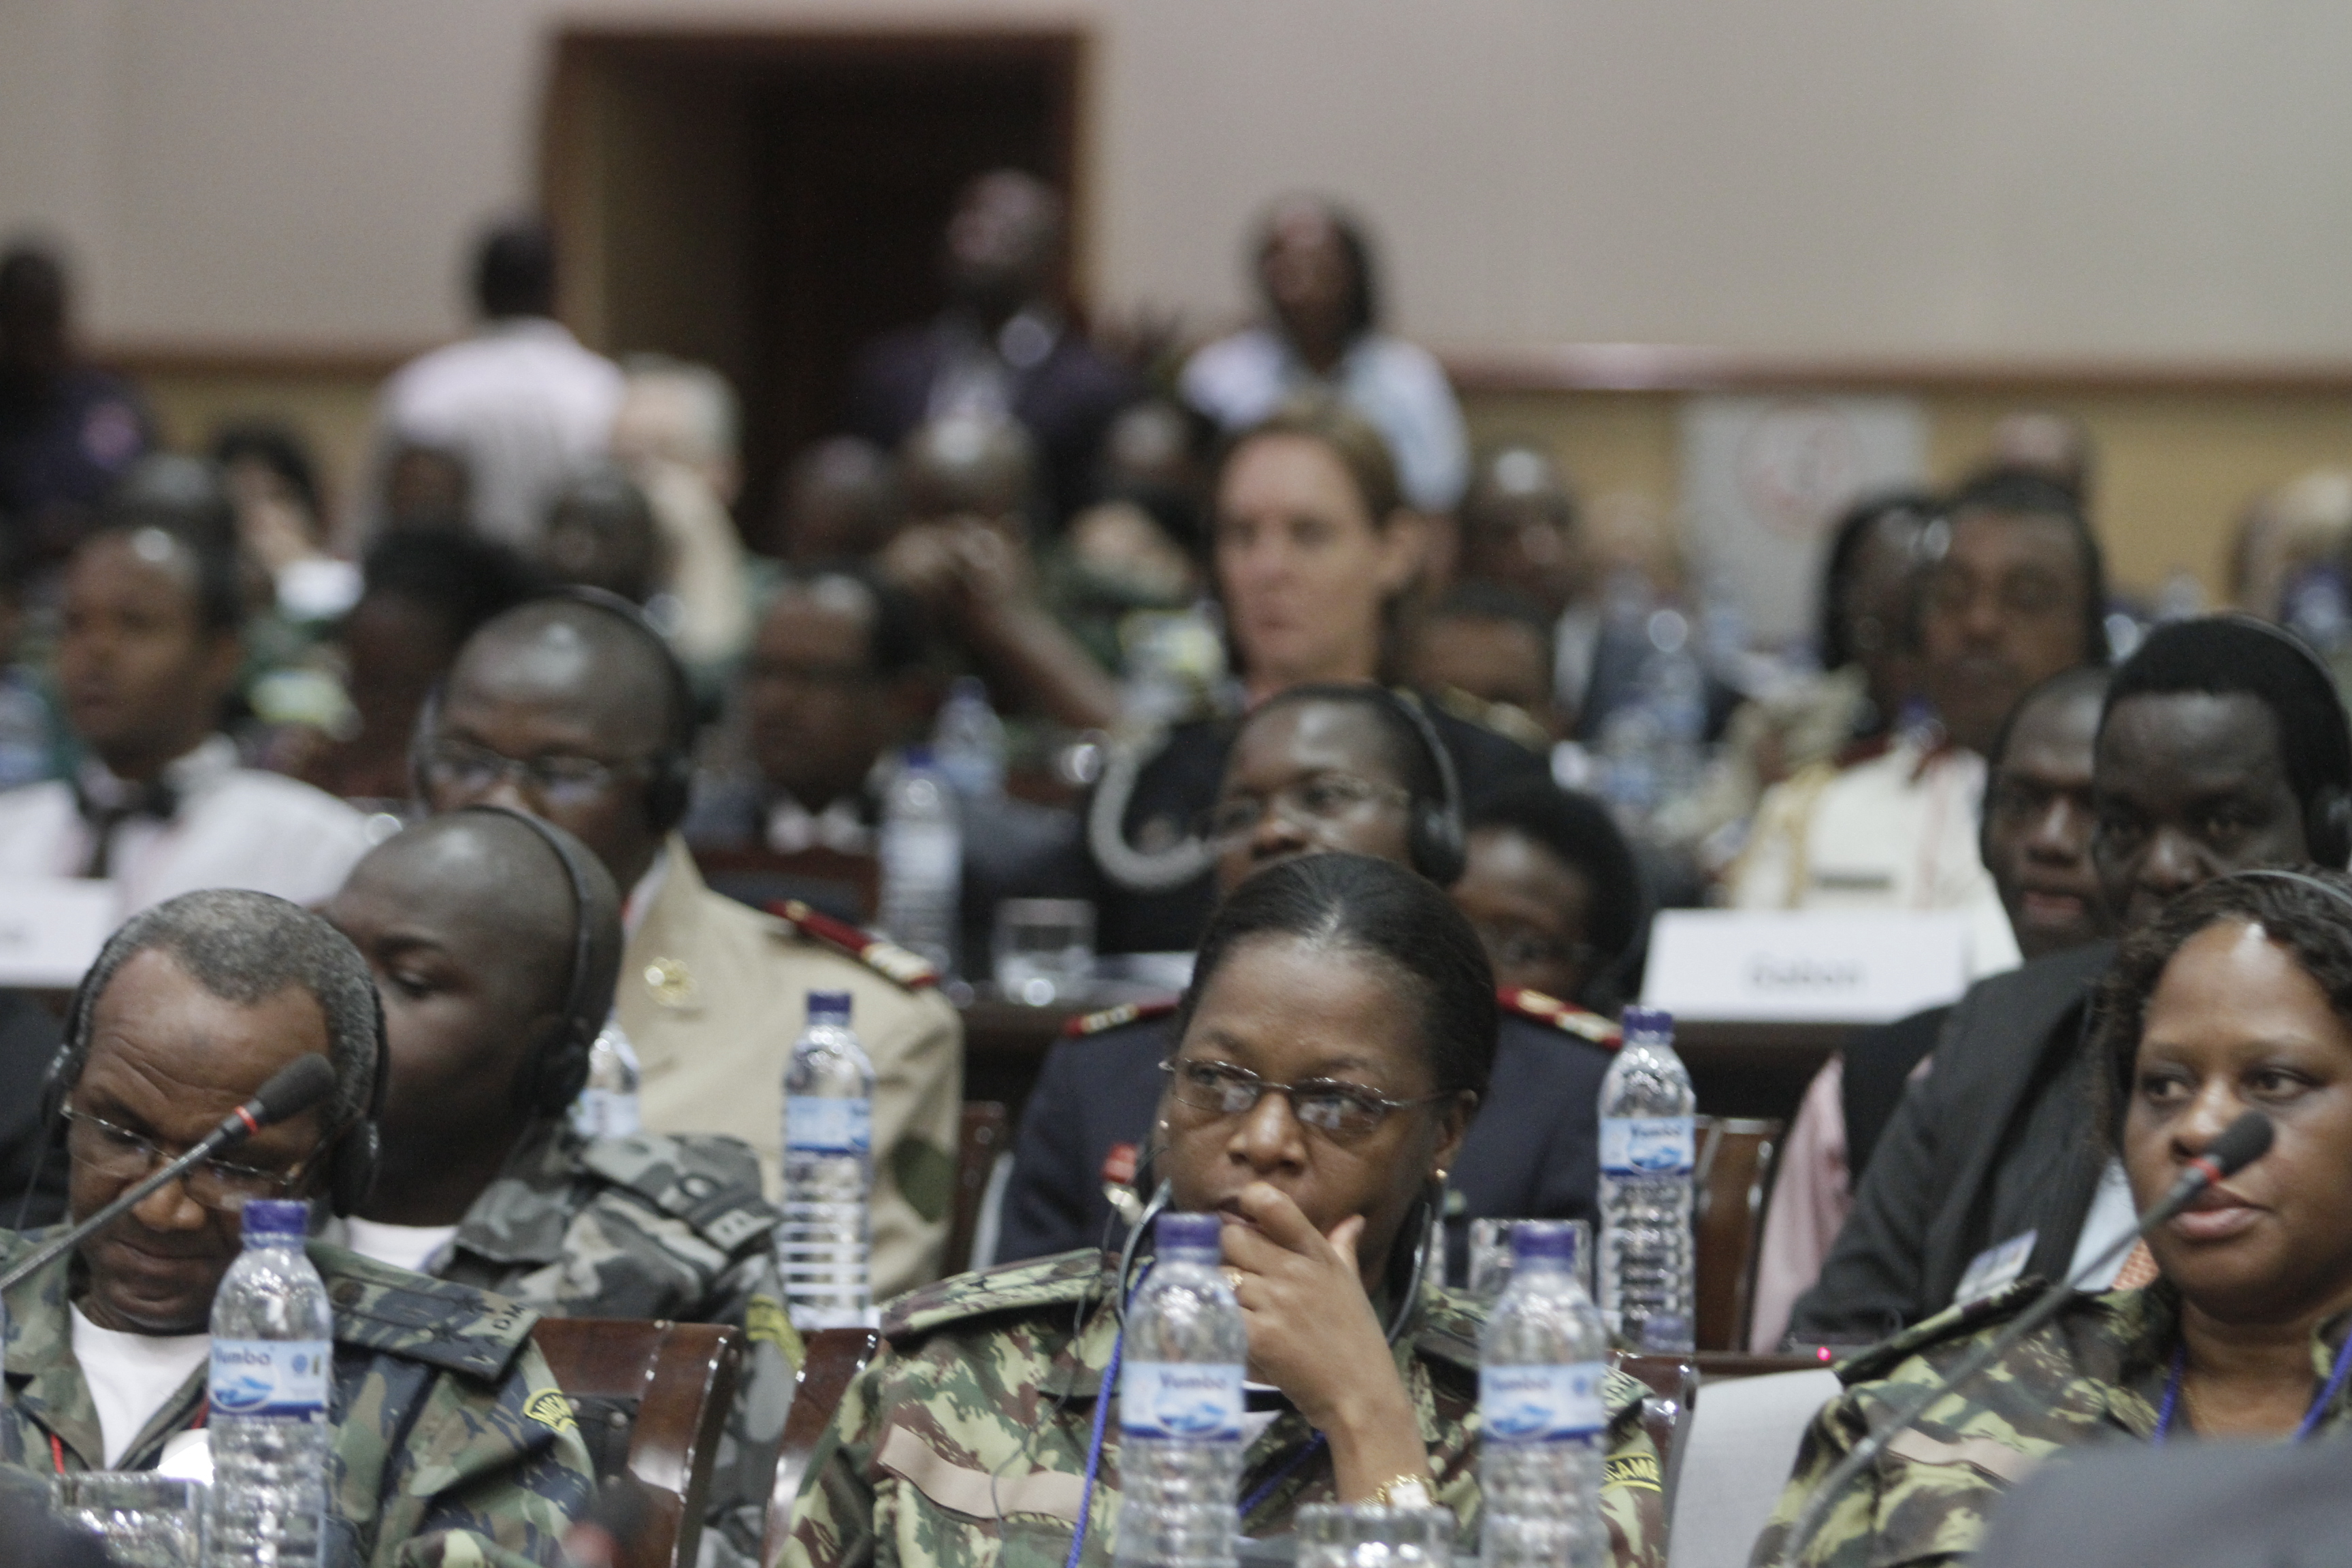 Military and civilian delegates and subject matter experts from 77 nations gathered for the 2012 International Military HIV/AIDS Conference in Maputo, Mozambique. (USAFE AFAFRICA/Flickr)